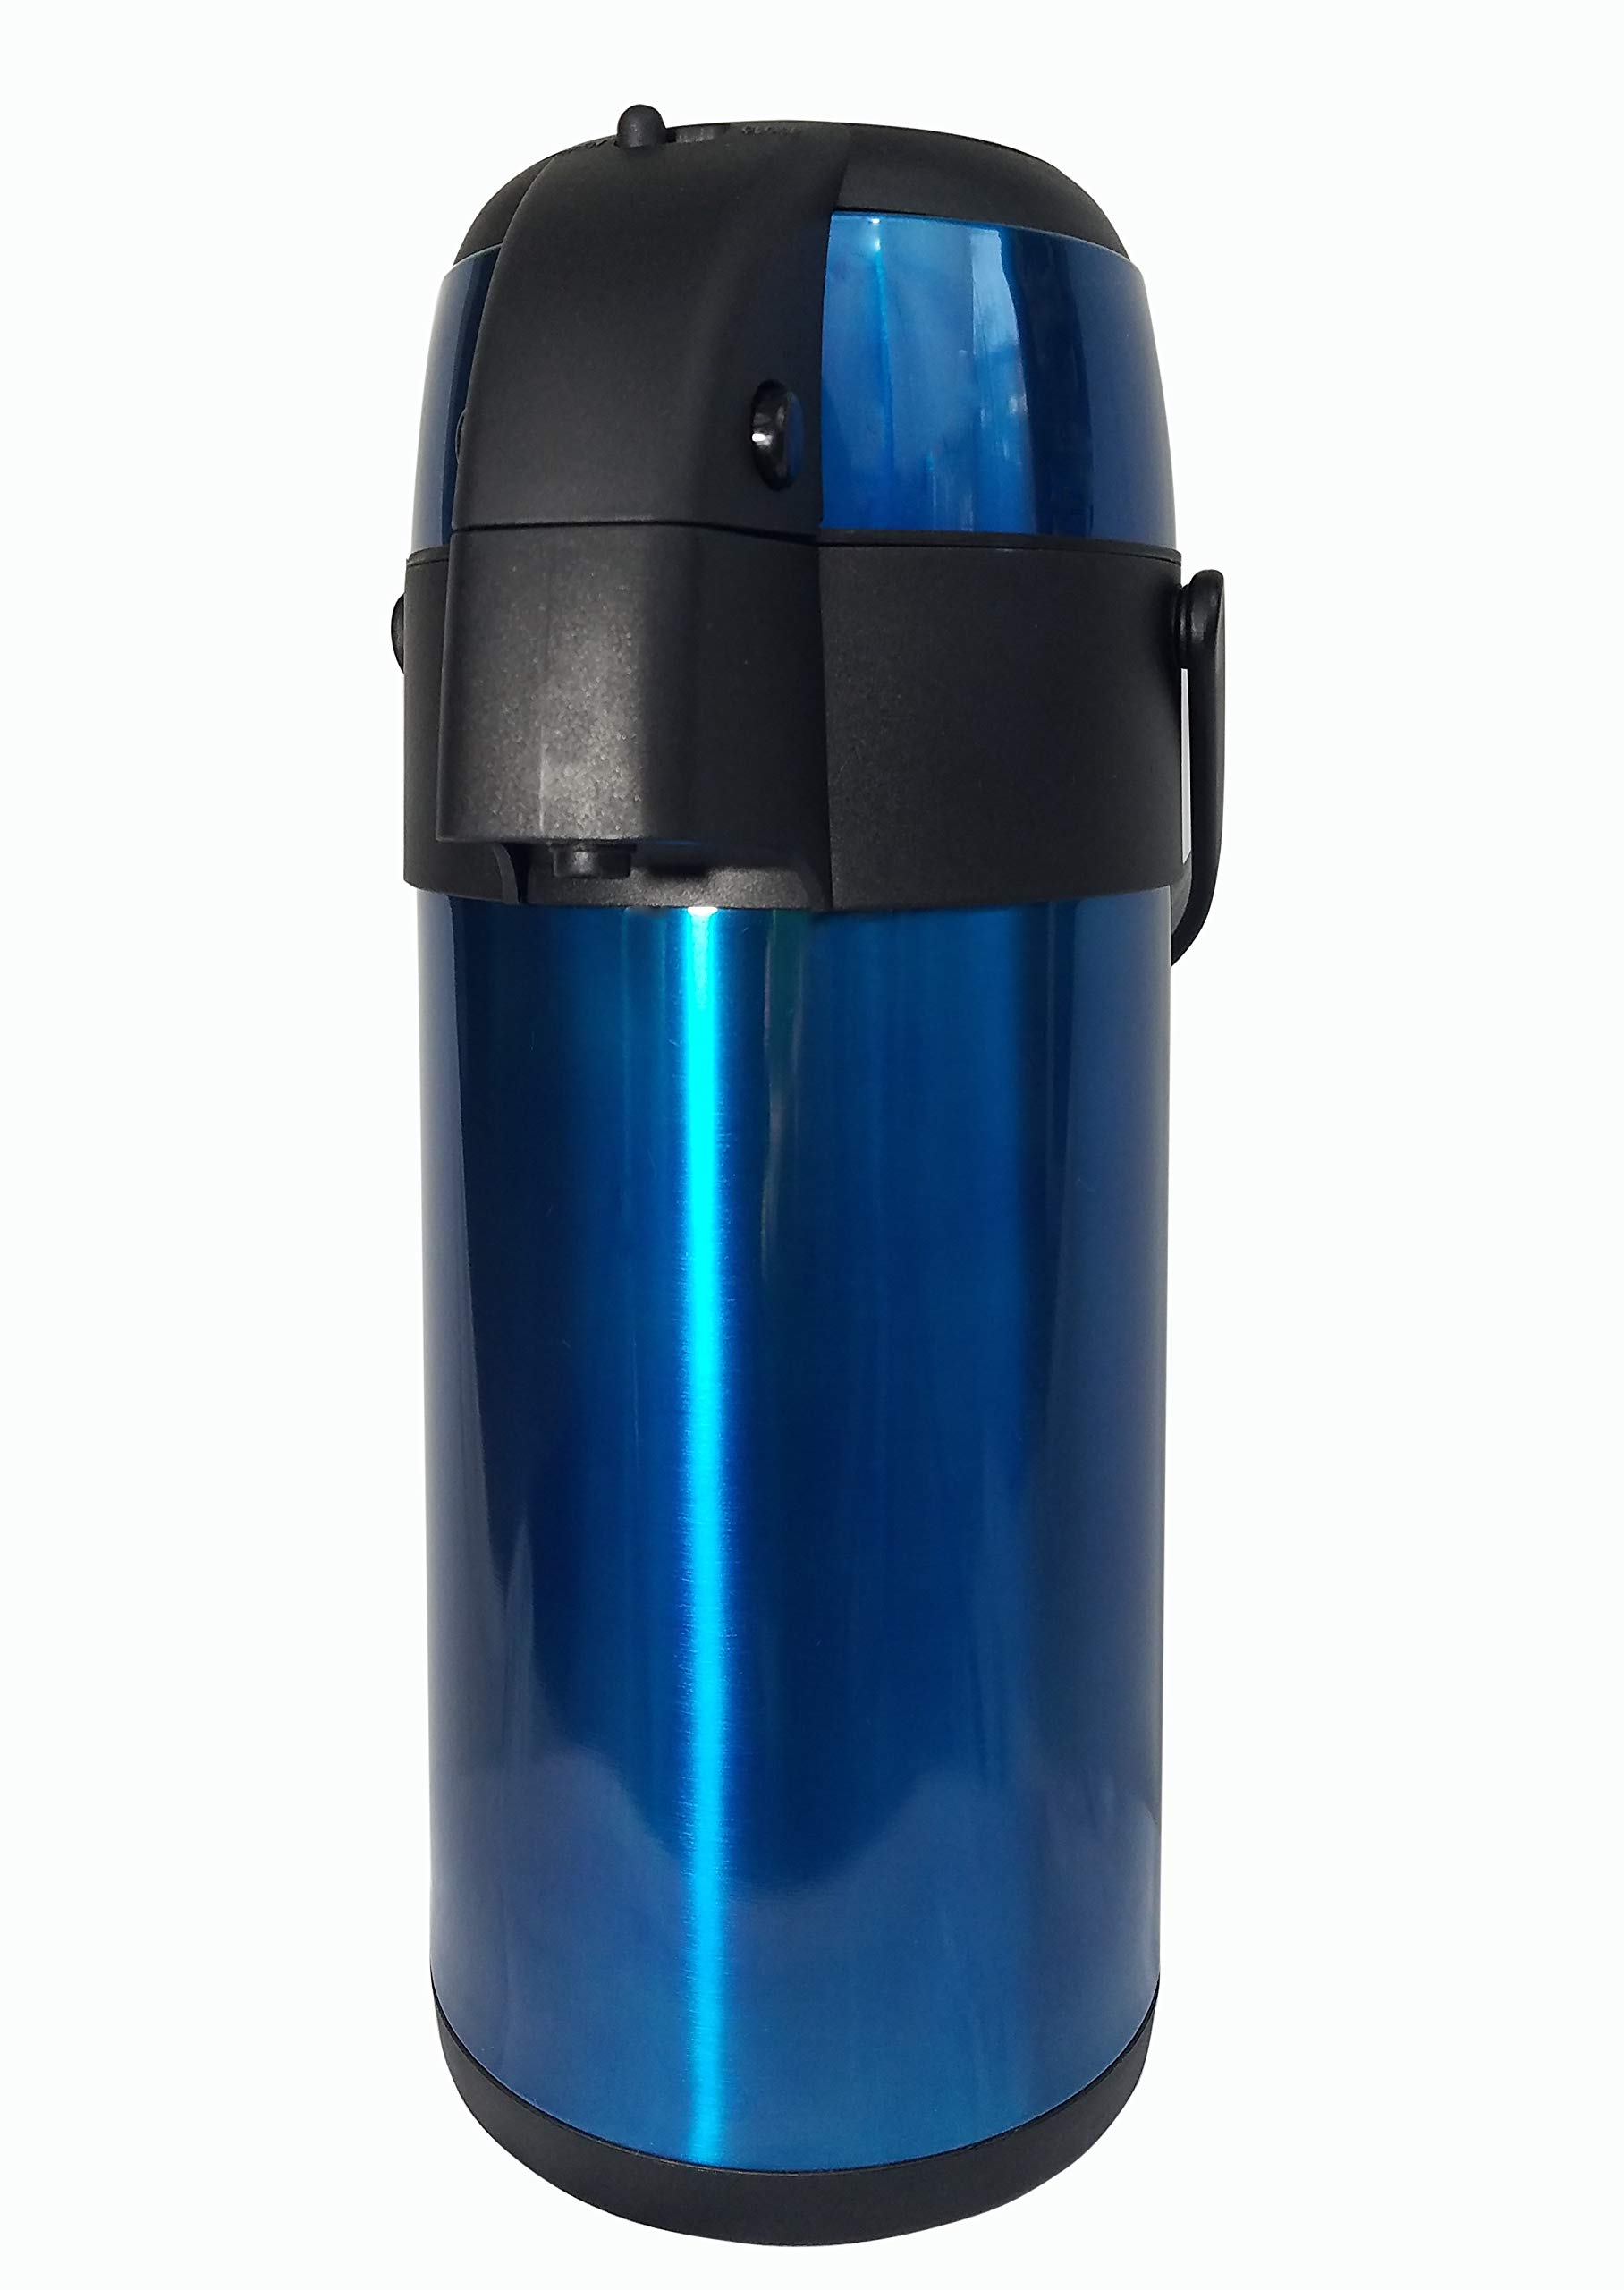 TherMite Airpot Coffee/Beverage Dispenser with Pump. [Midnight Blue], 3 Liter (102 oz), Insulated Double-Walled Stainless Steel Thermal Carafe to Keep Drinks Hot or Cold by Thermite (Image #1)